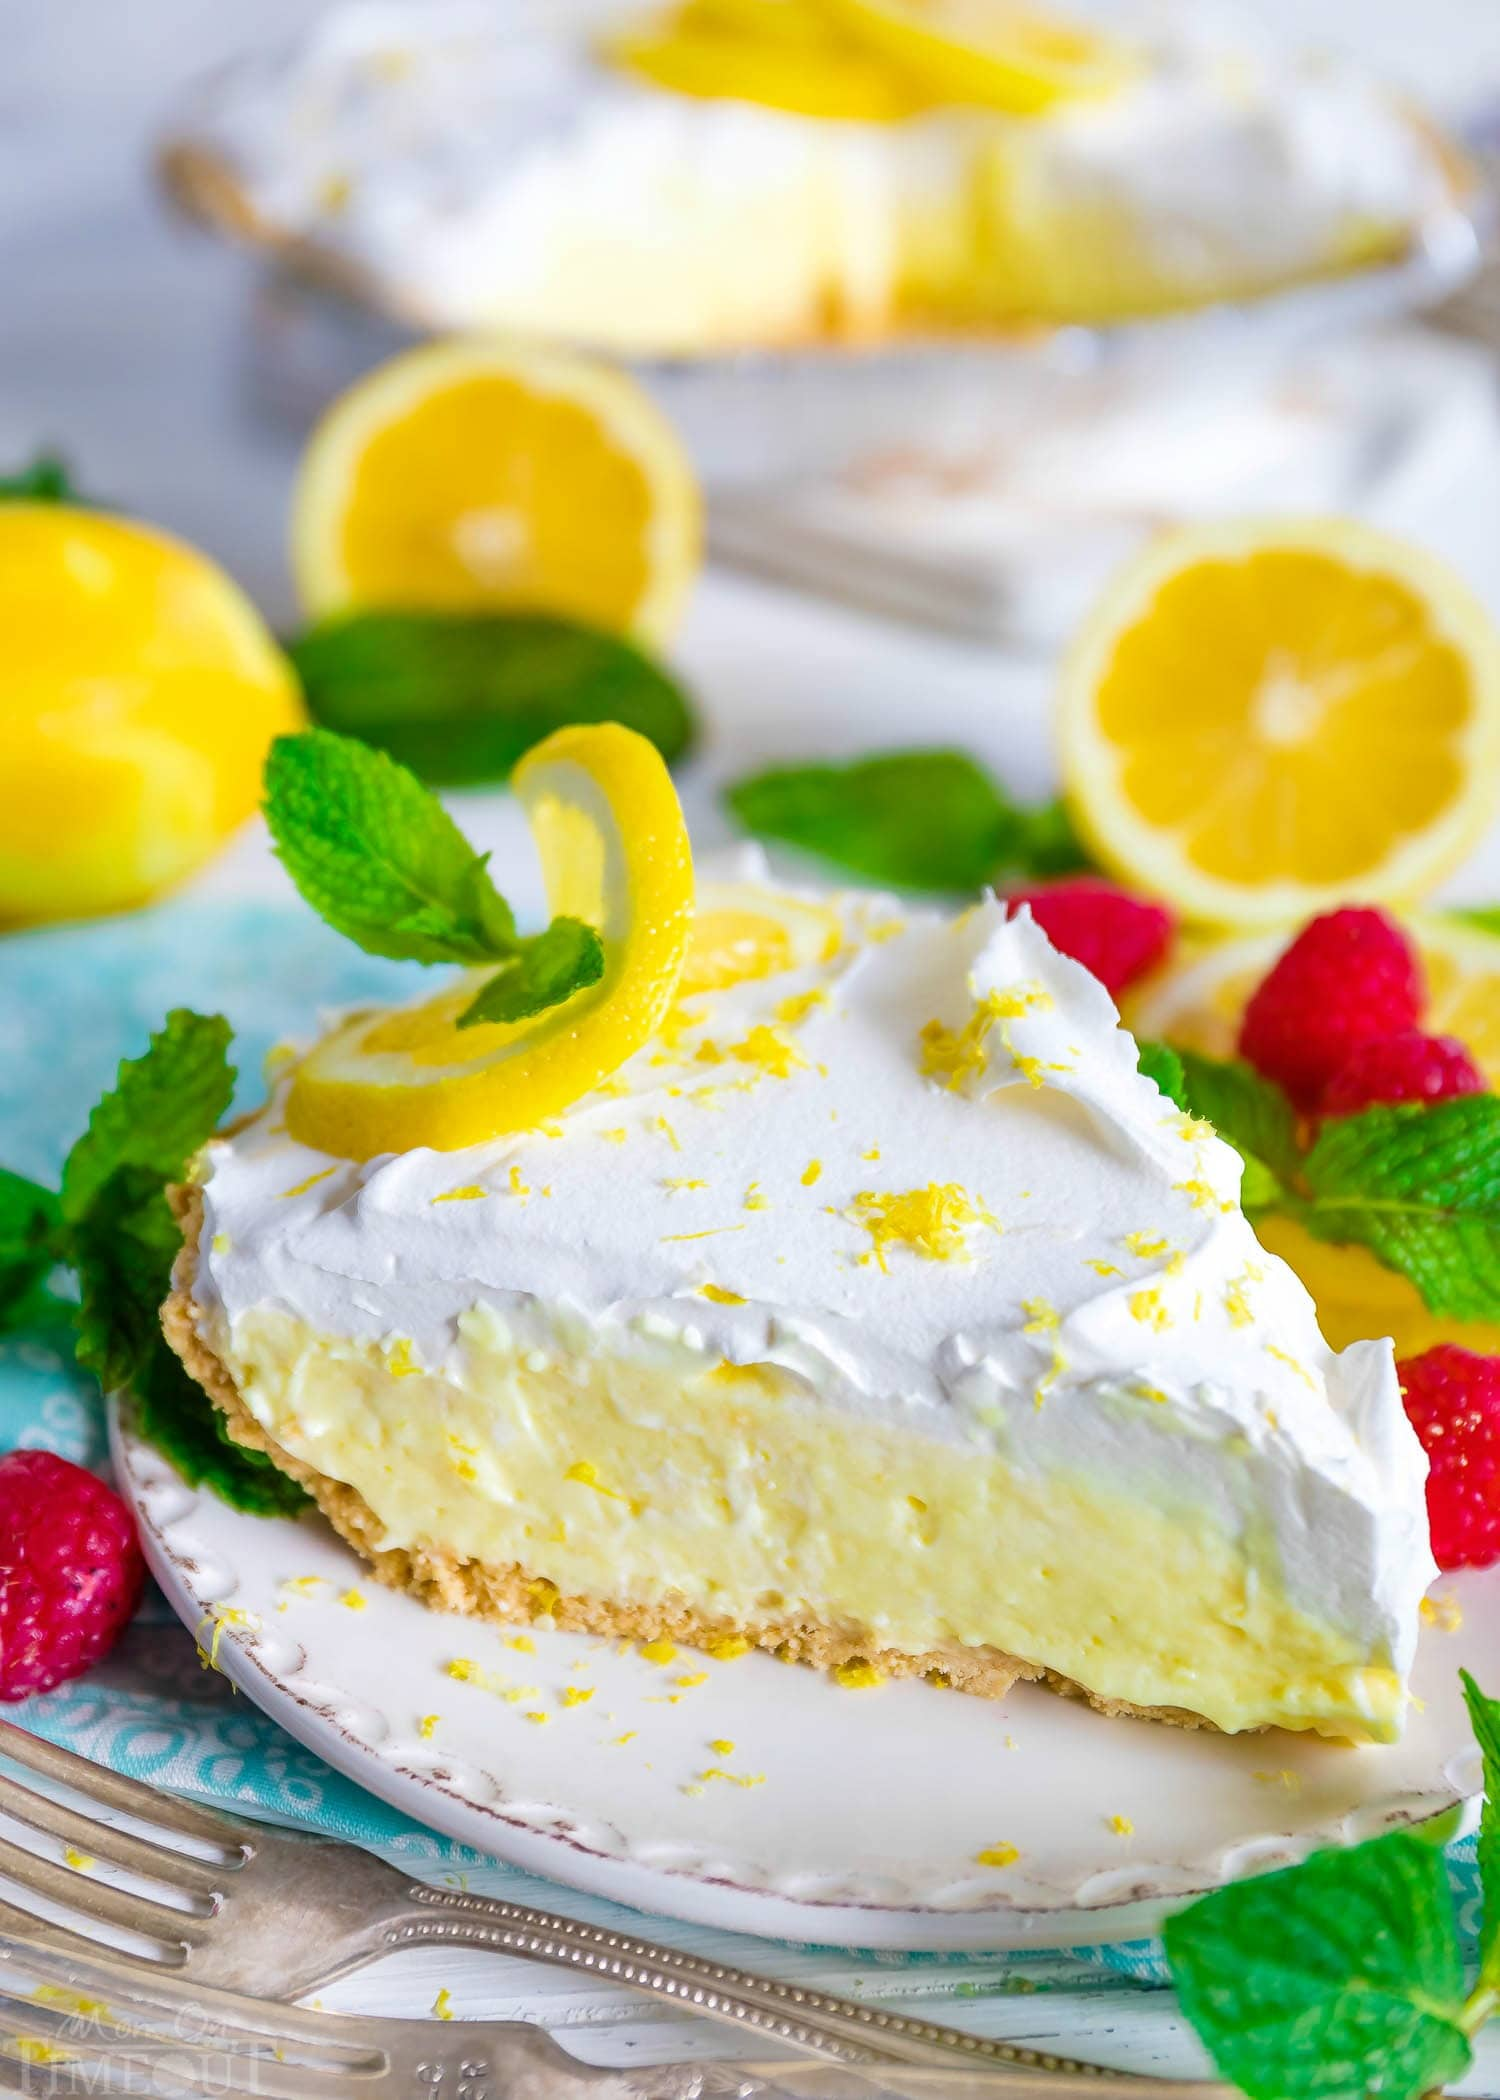 lemon pie with whipped cream topping on white plate.